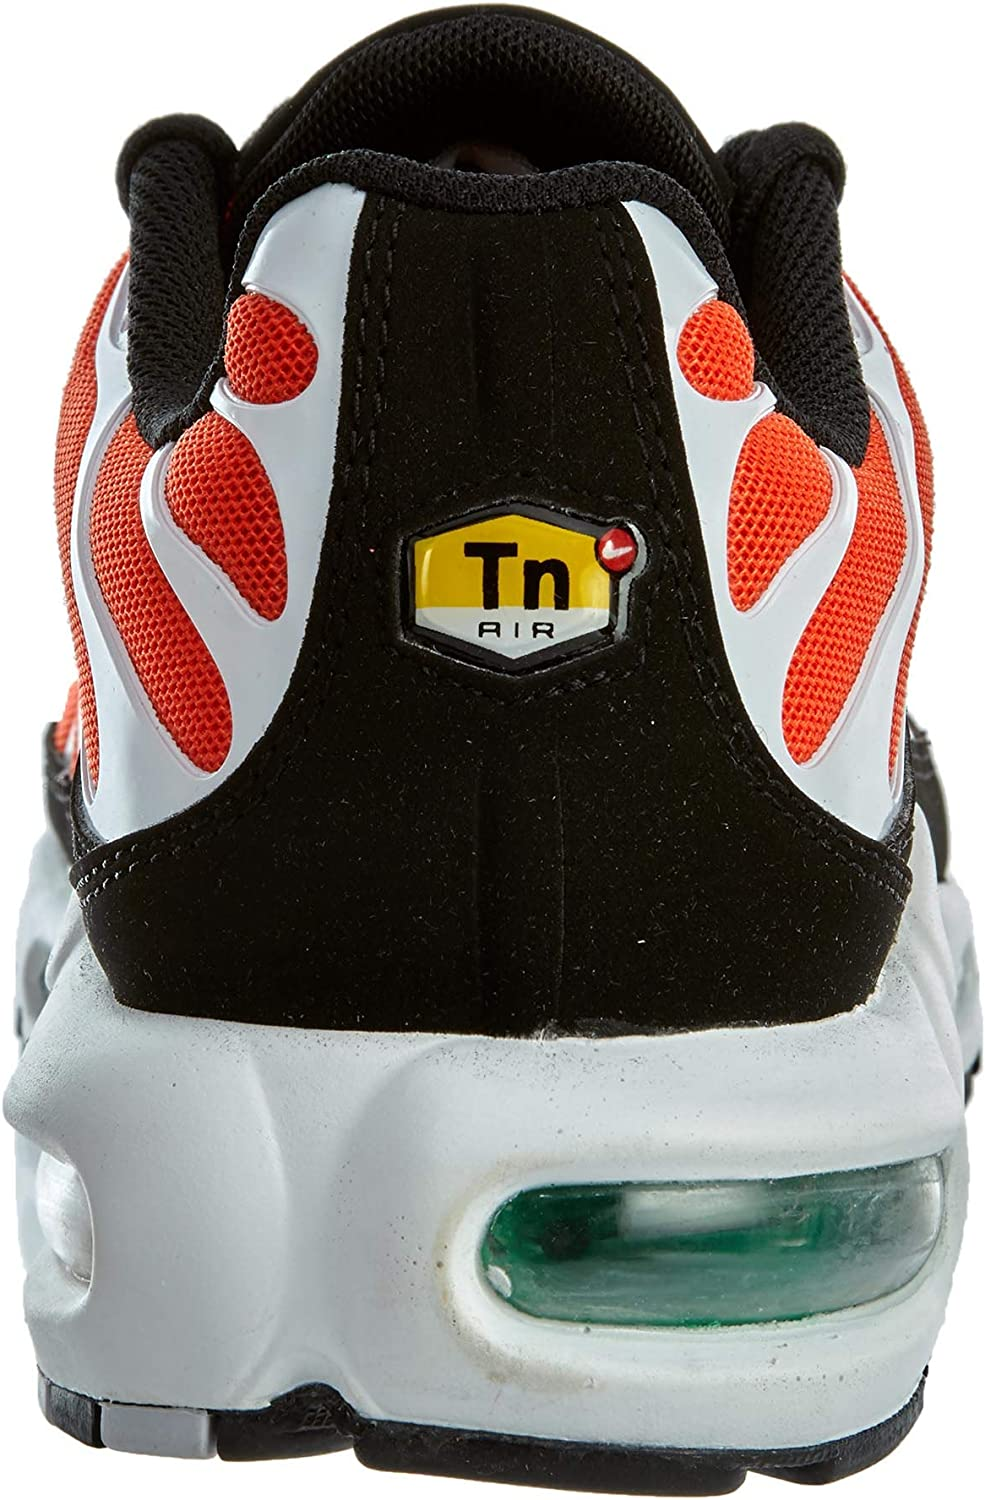 Nike Air Max Plus Mens Style: 852630 801 Size: 7